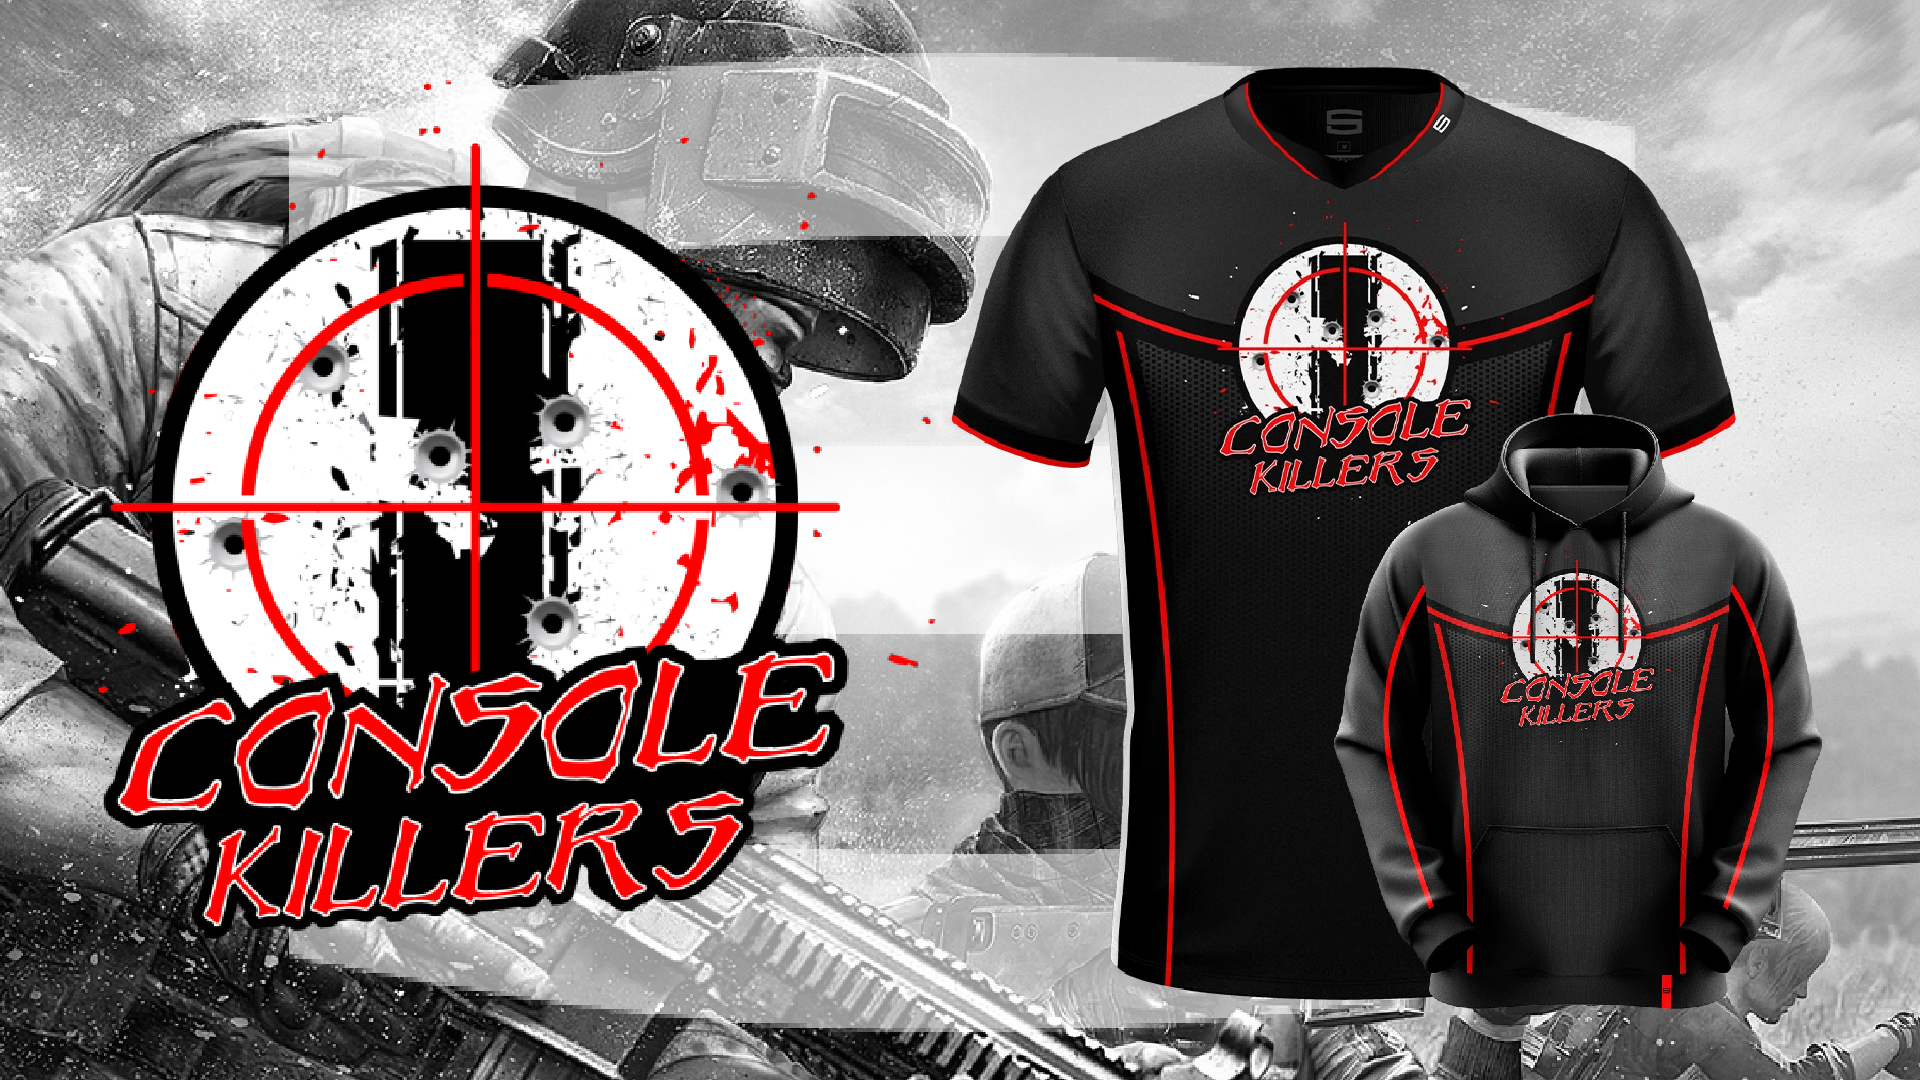 Console Killers Official Jerseys Feature Image